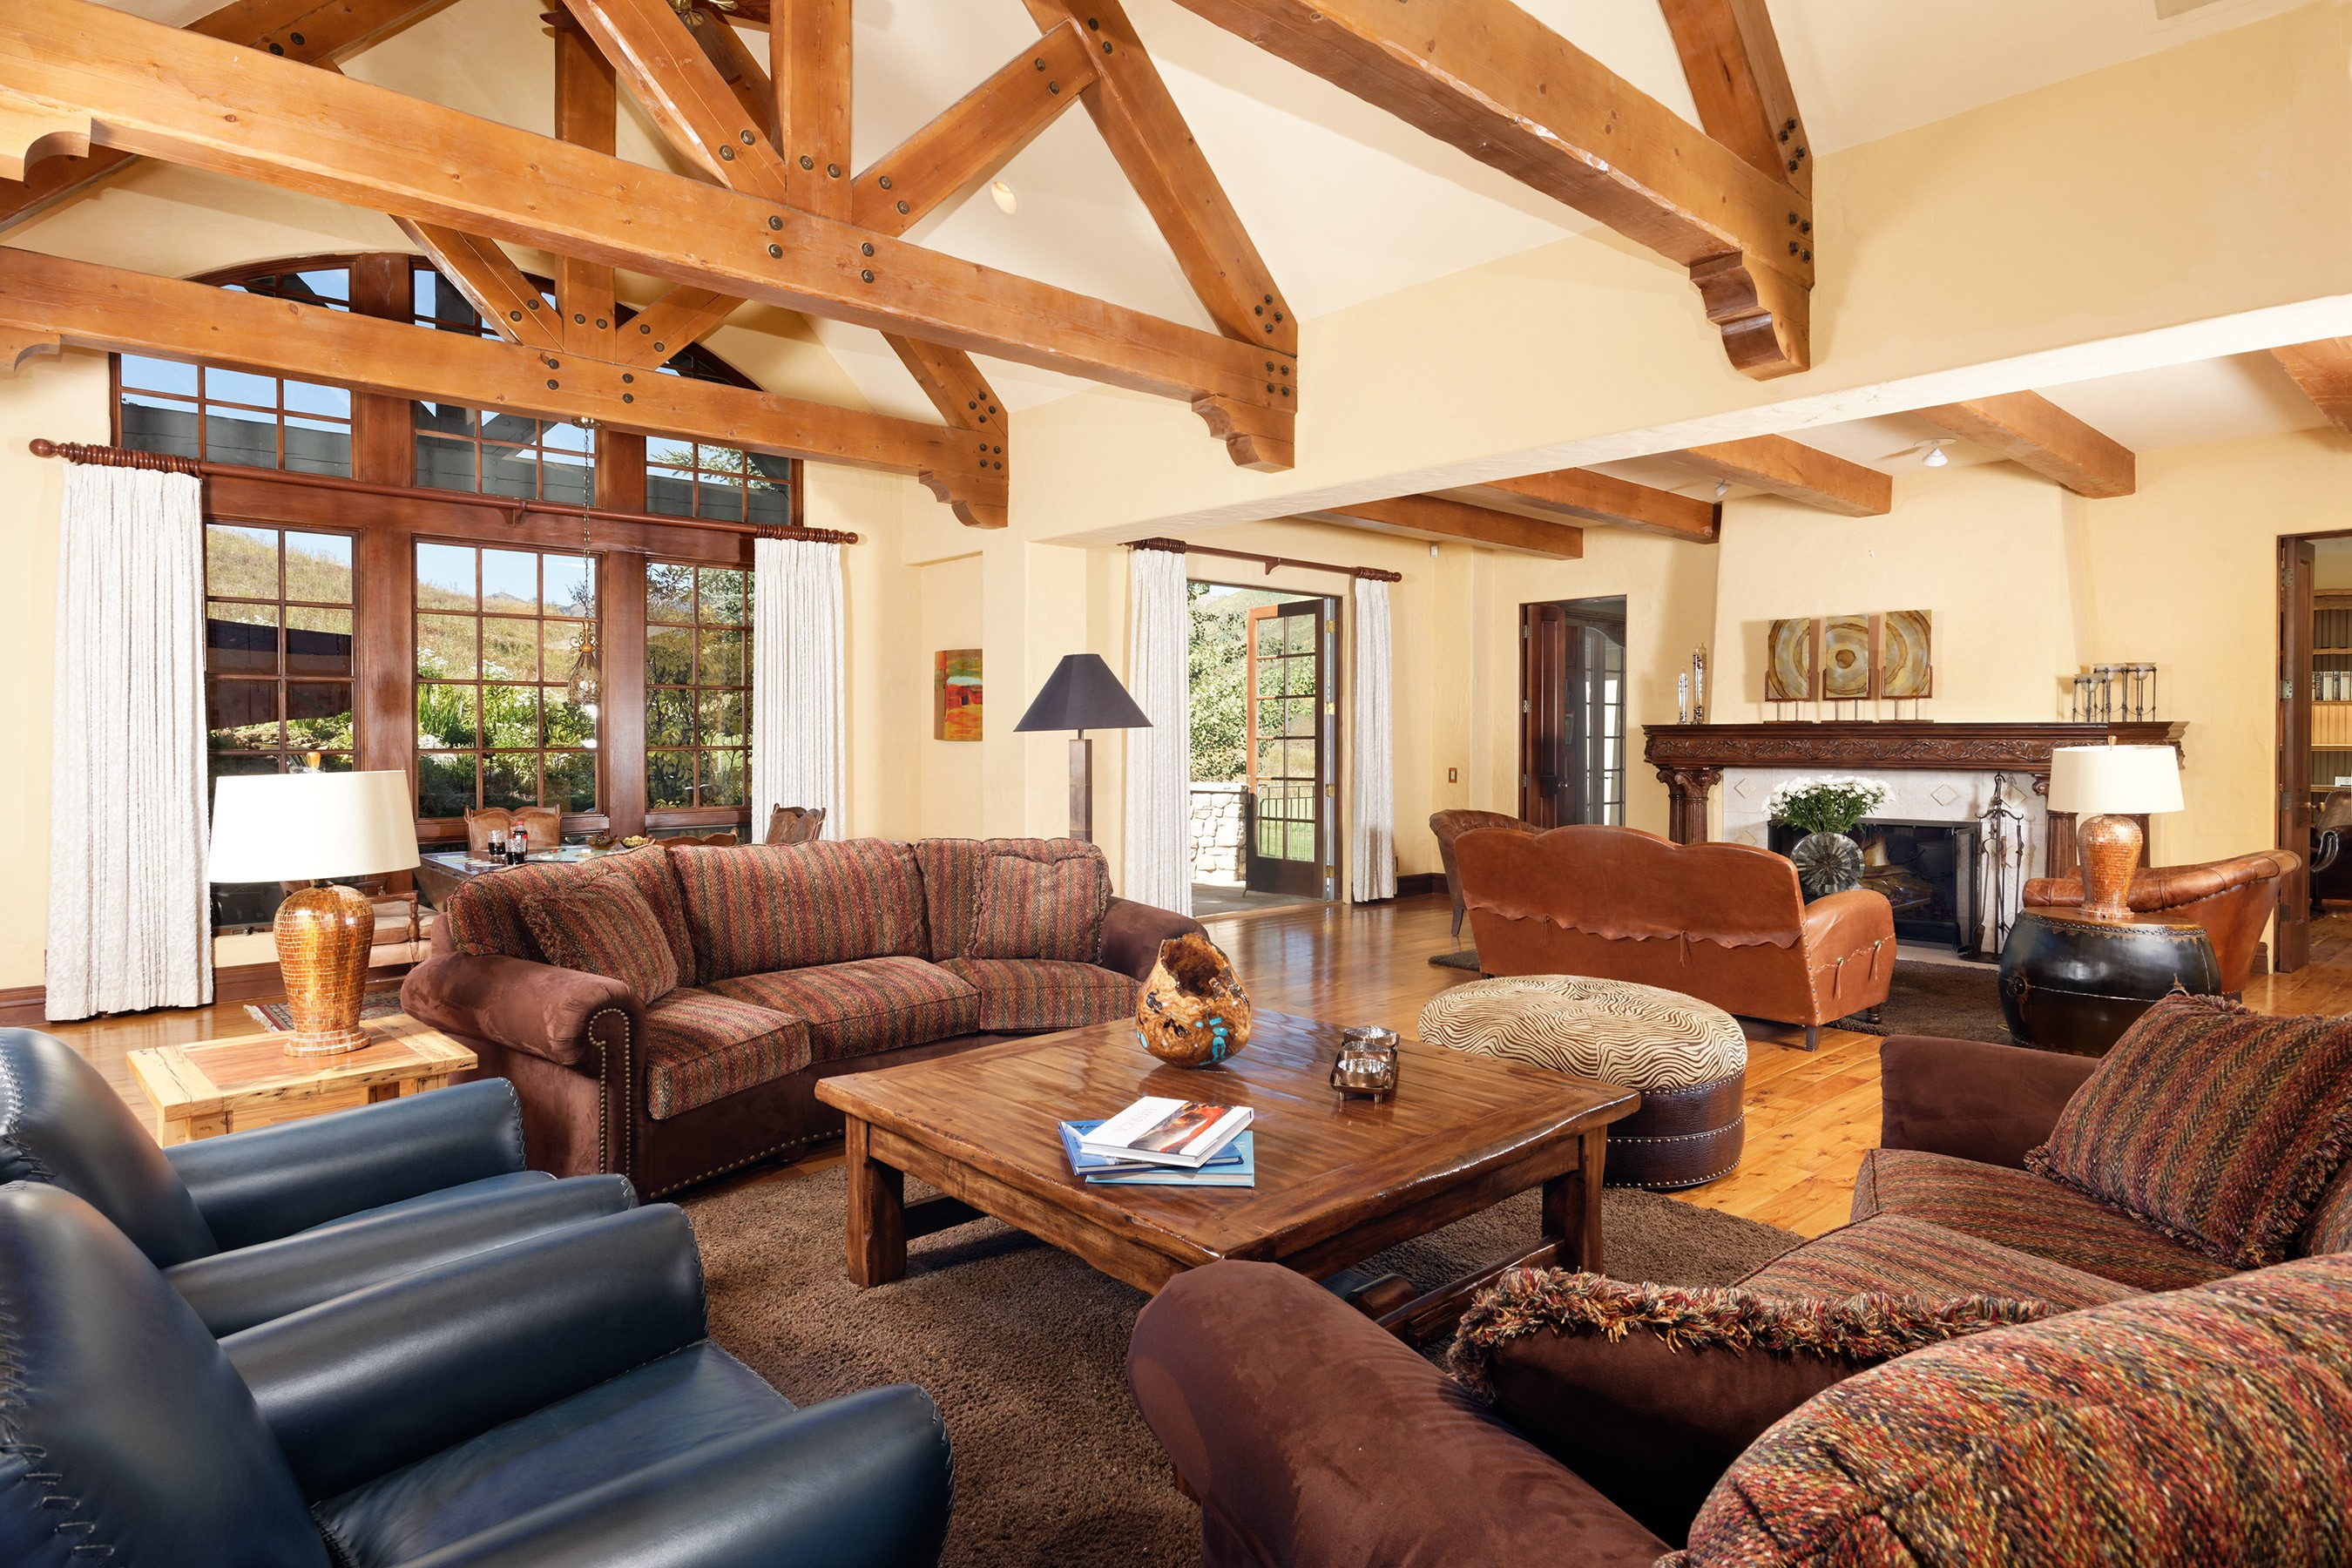 Single Family Home for Rent at 179 Divide Drive Snowmass Village, Colorado, 81615 United States